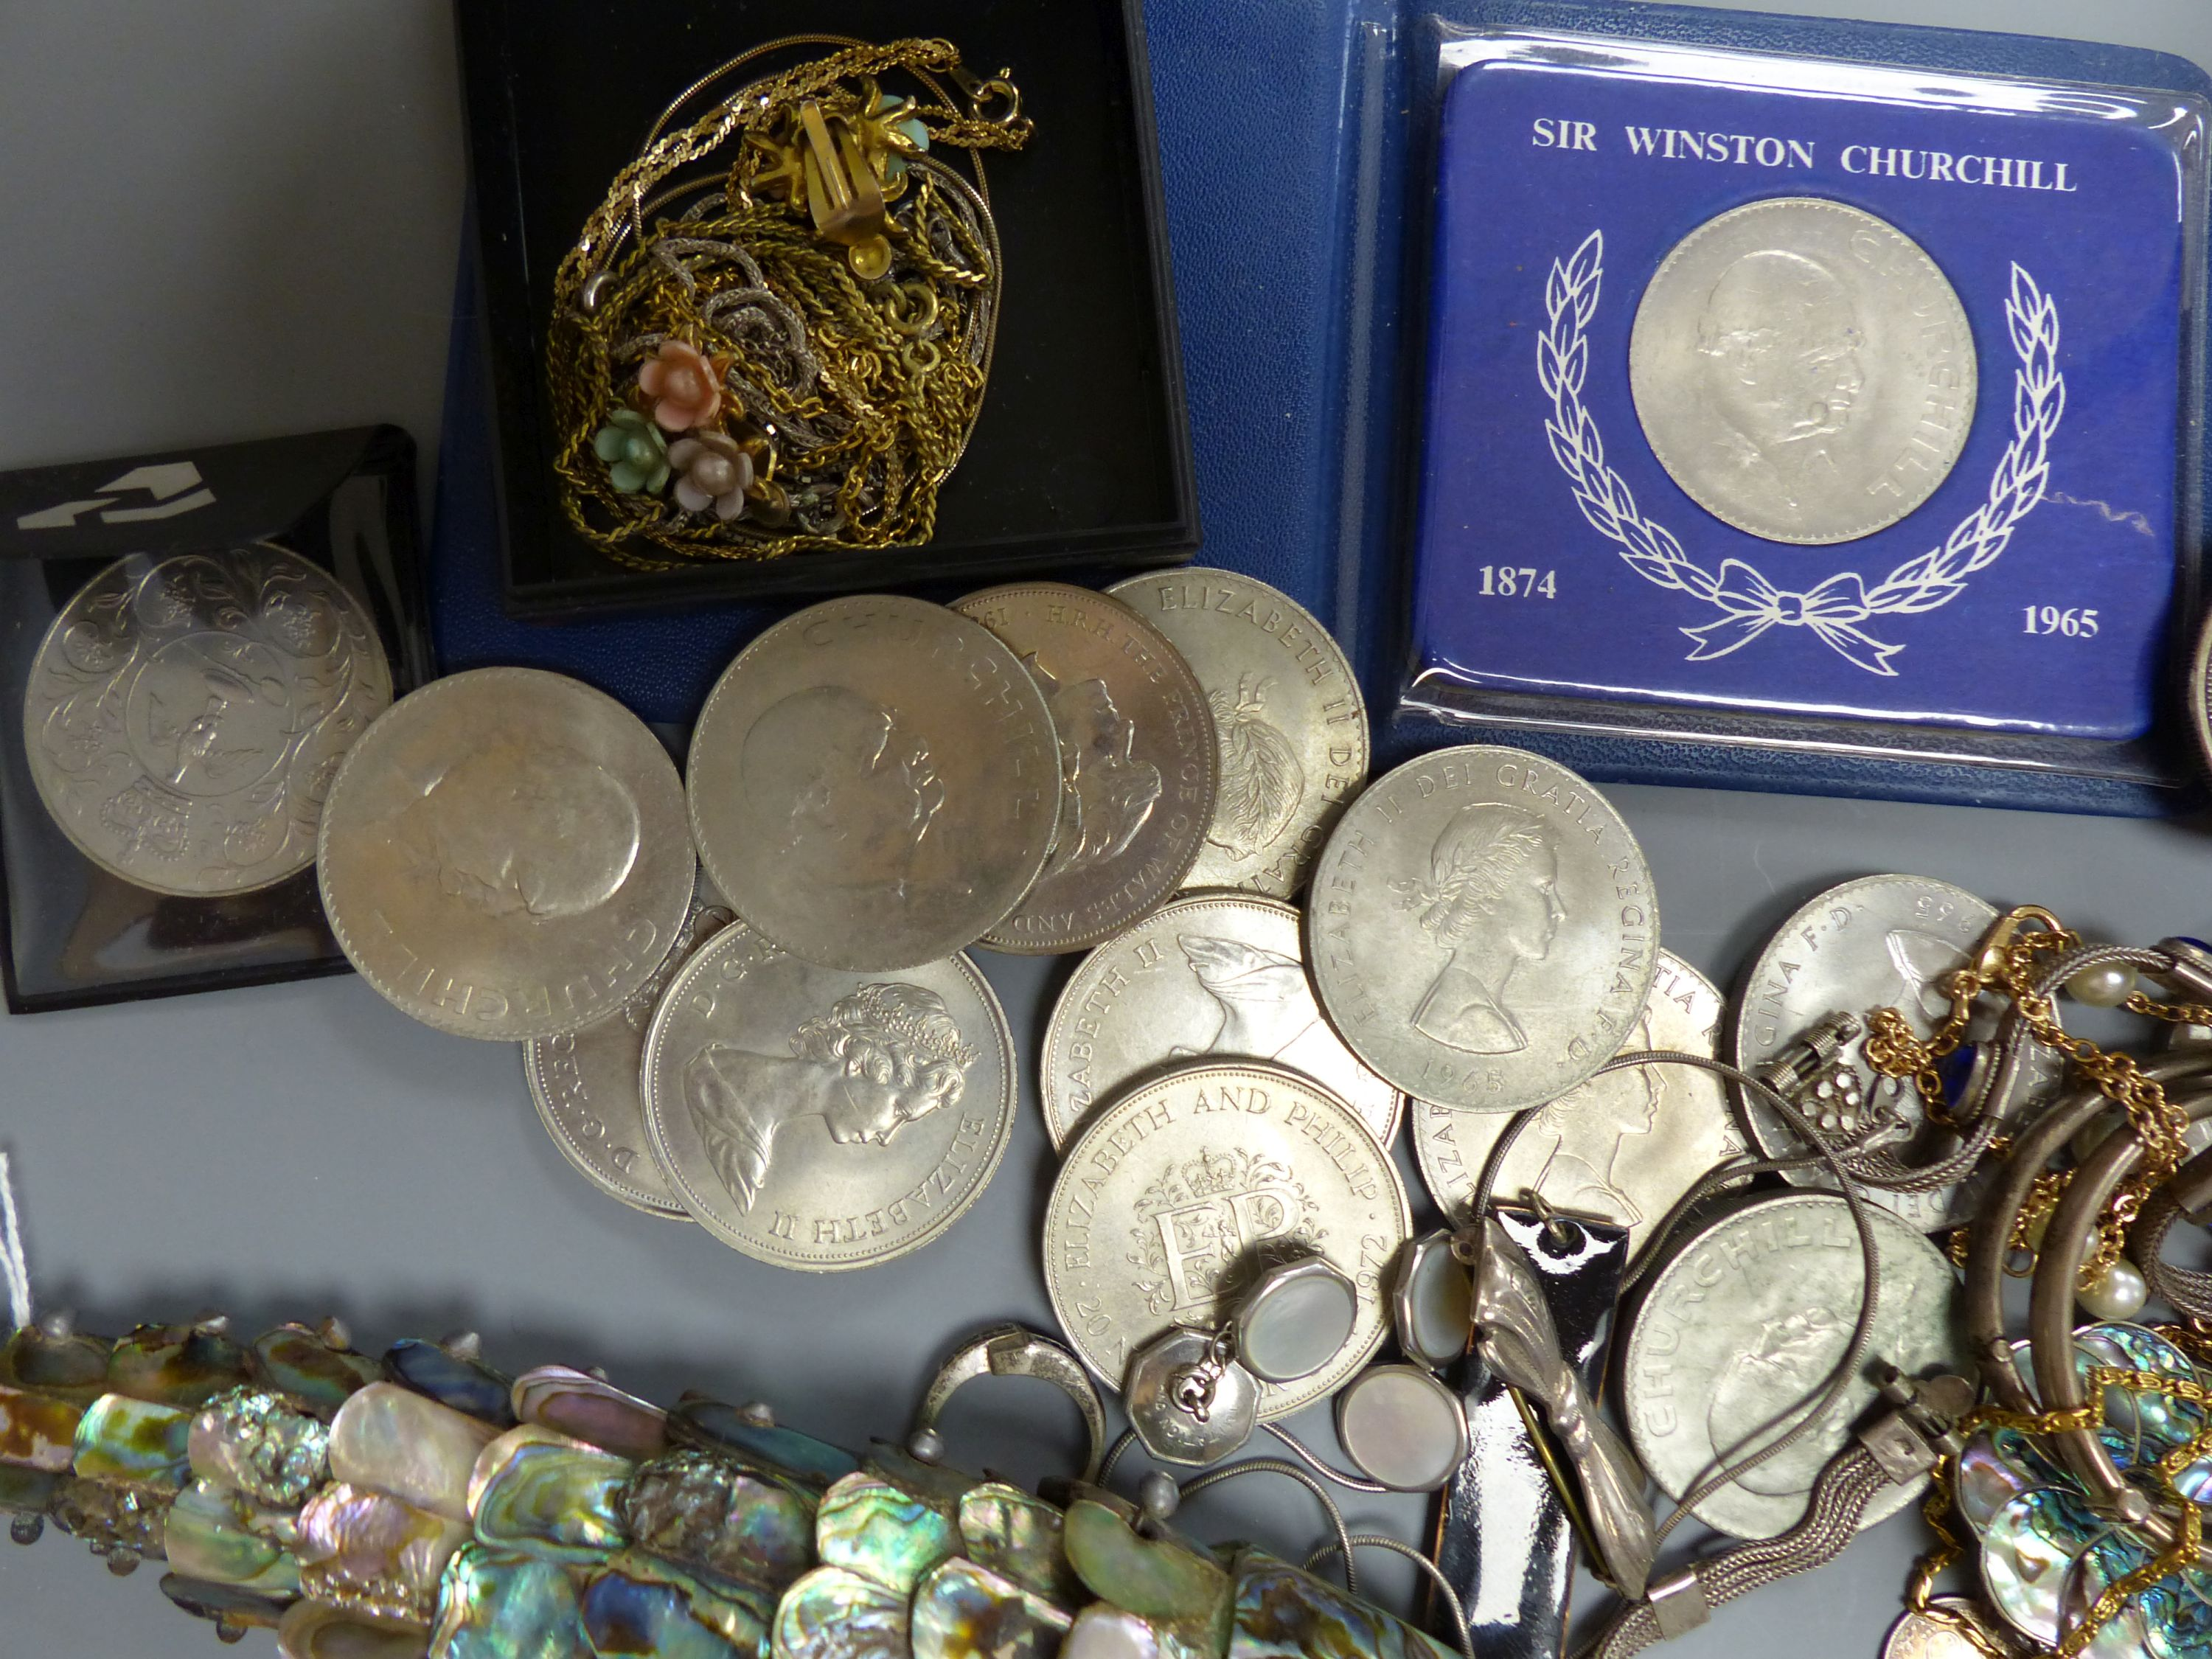 A quantity of mixed costume jewellery, an articulated fish, coins etc - Image 5 of 5